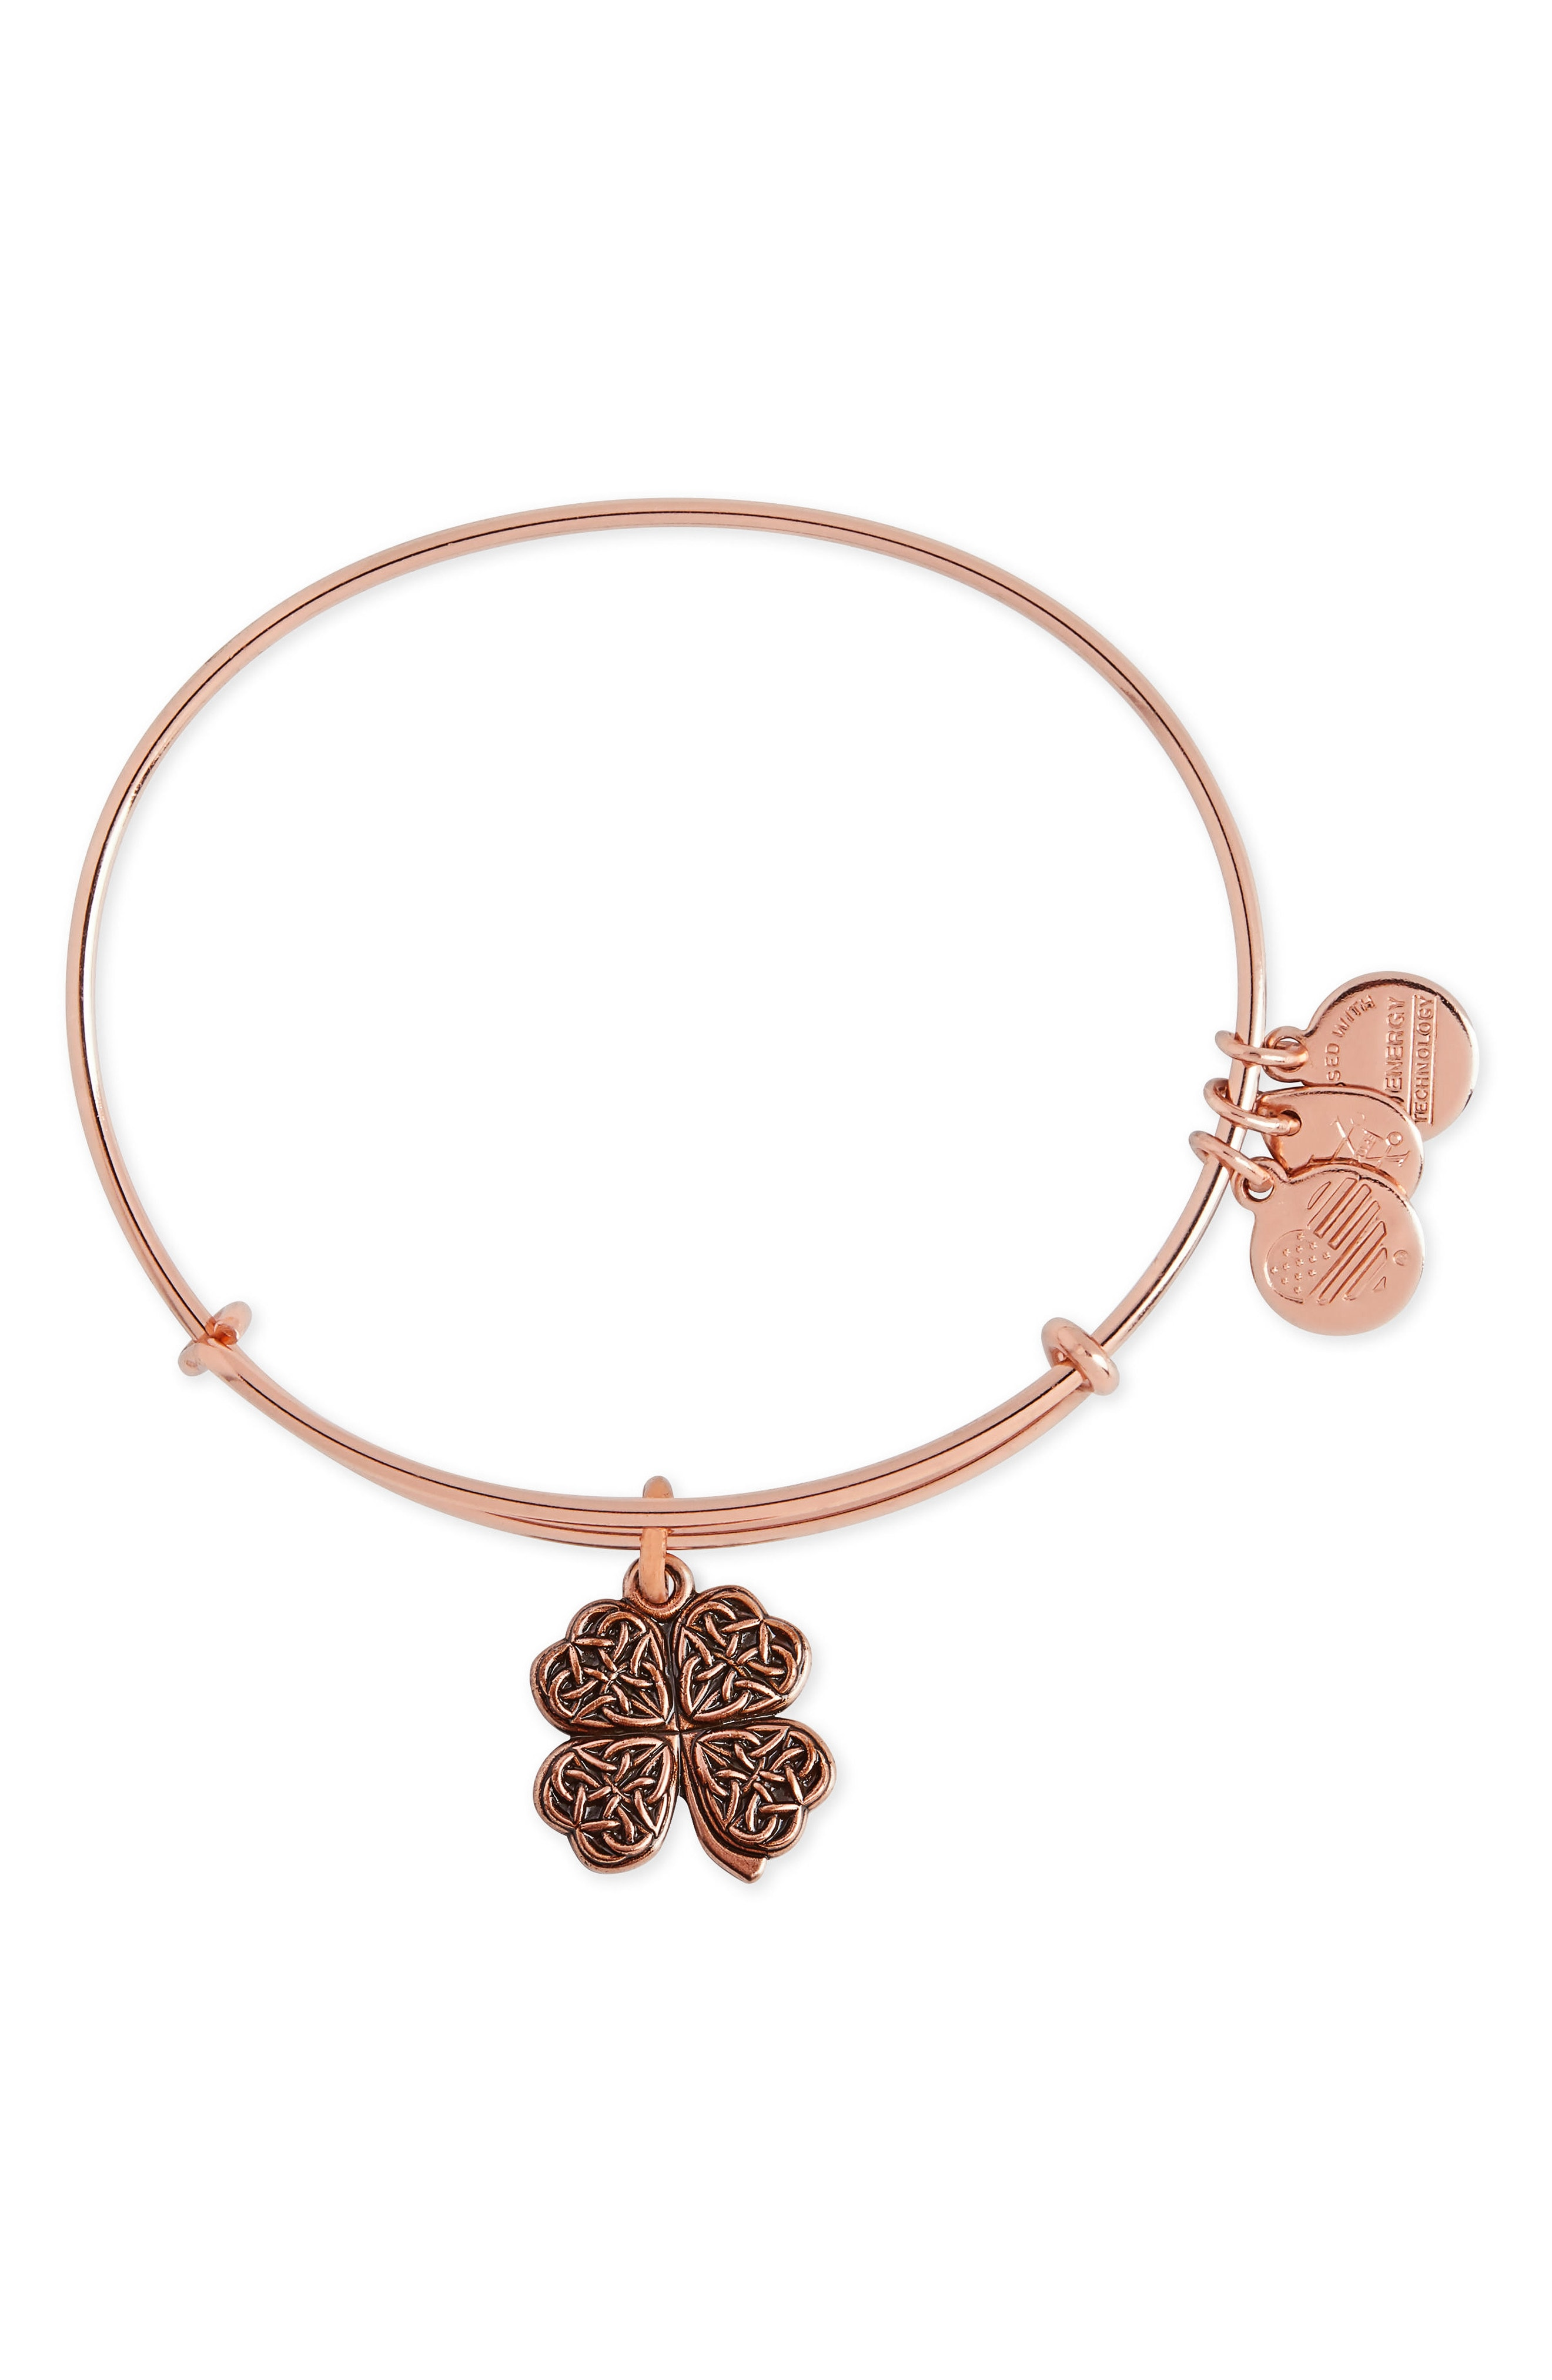 Alex and Ani Four-Leaf Clover Adjustable Wire Bangle (Nordstrom Exclusive)